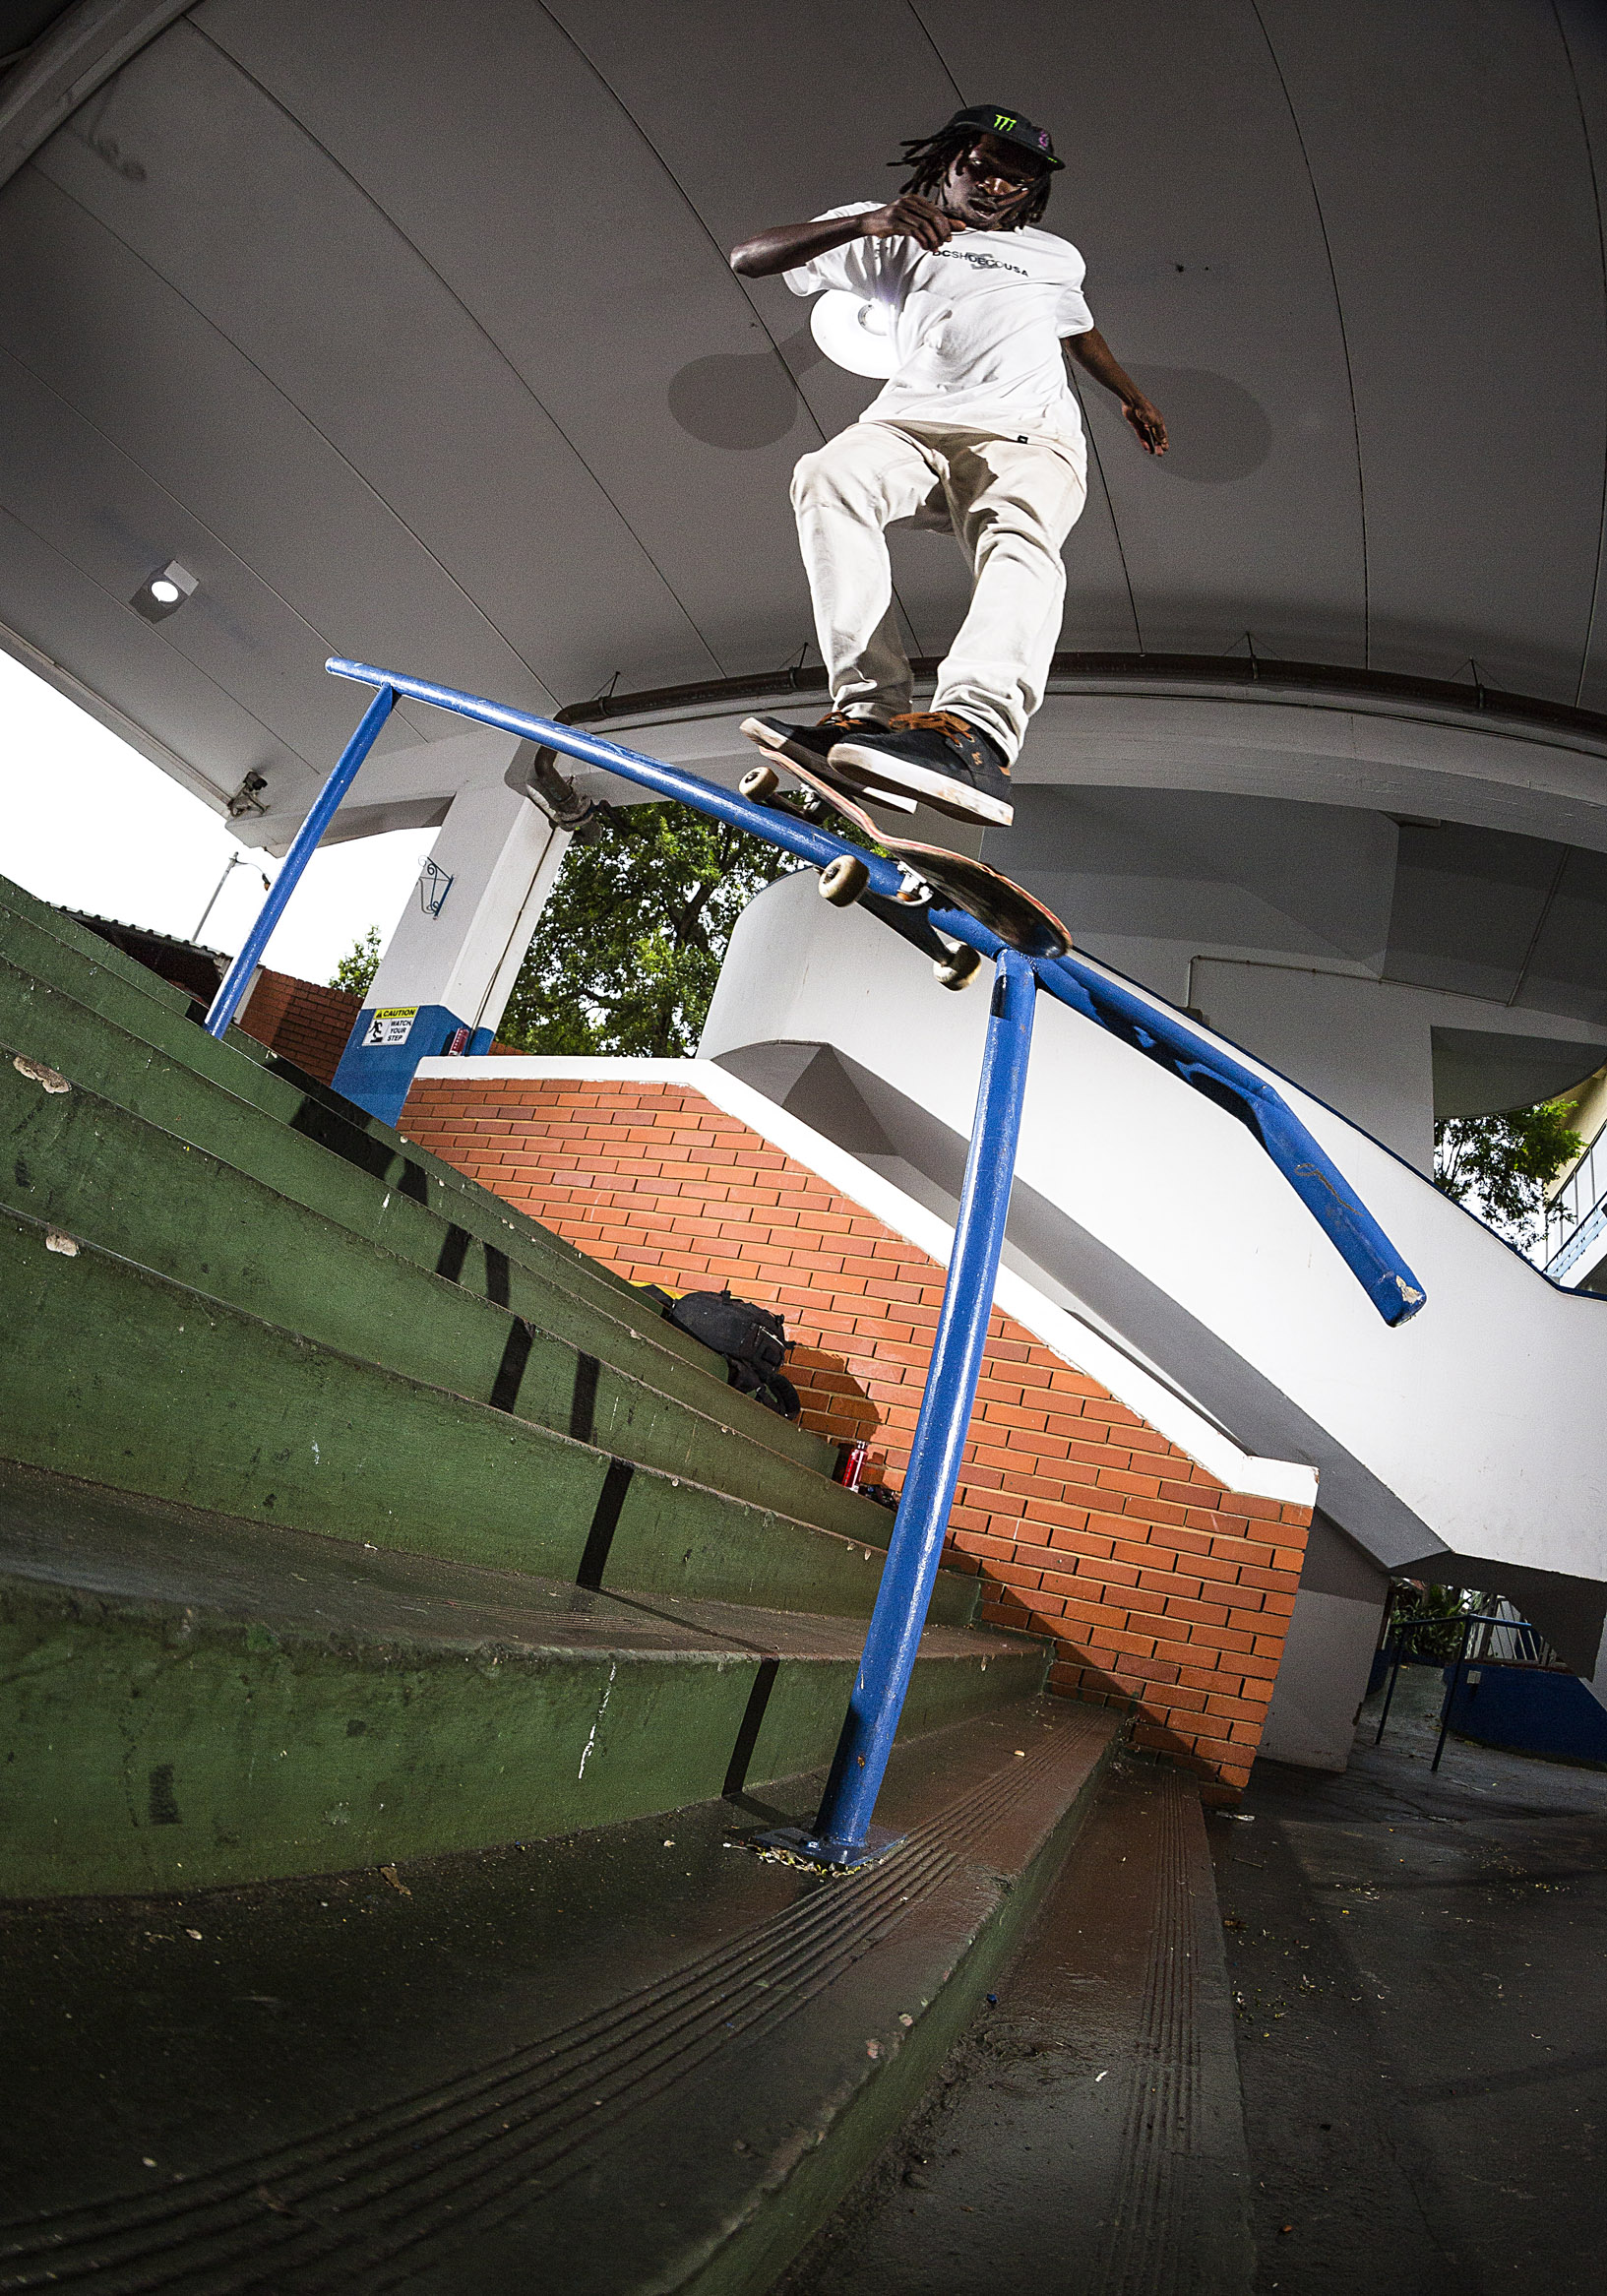 khule back smith